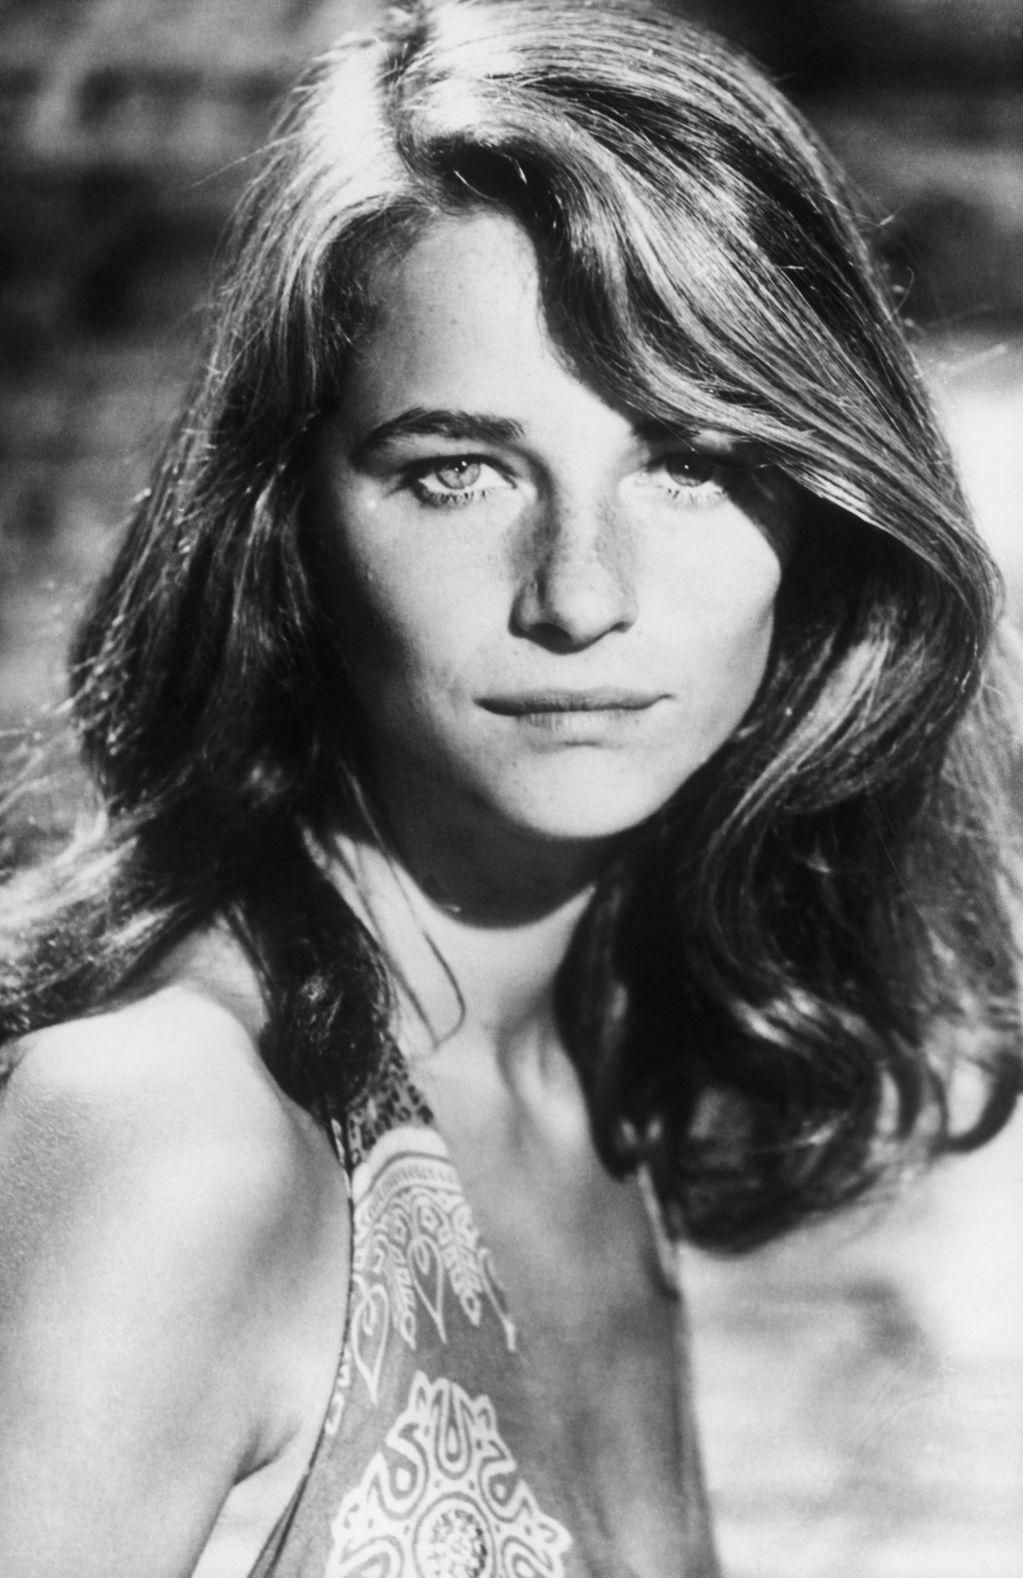 charlotte rampling helmut newtoncharlotte rampling young, charlotte rampling style, charlotte rampling helmut newton, charlotte rampling interview, charlotte rampling instagram, charlotte rampling my heart and i, charlotte rampling the look, charlotte rampling quotes, charlotte rampling imdb, charlotte rampling 45 years, charlotte rampling in portiere di notte, charlotte rampling young photos, charlotte rampling 2016, charlotte rampling dexter, charlotte rampling ysl, charlotte rampling hairstyle, charlotte rampling fashion style, charlotte rampling makeup, charlotte rampling pictures, charlotte rampling jean michel jarre